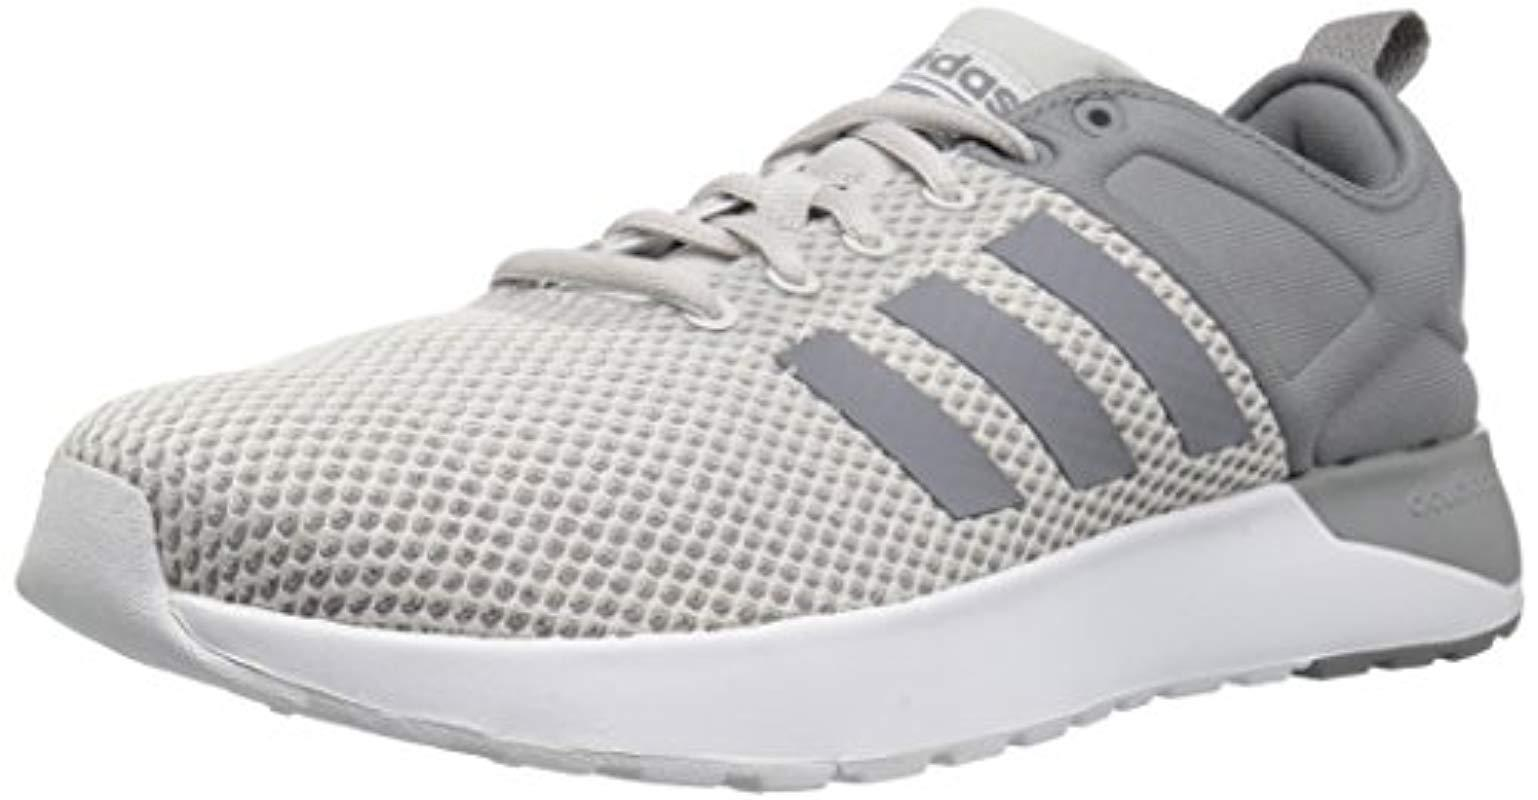 new arrival 53bef a2854 adidas. Mens Gray Neo Cf Super Racer Running-shoes